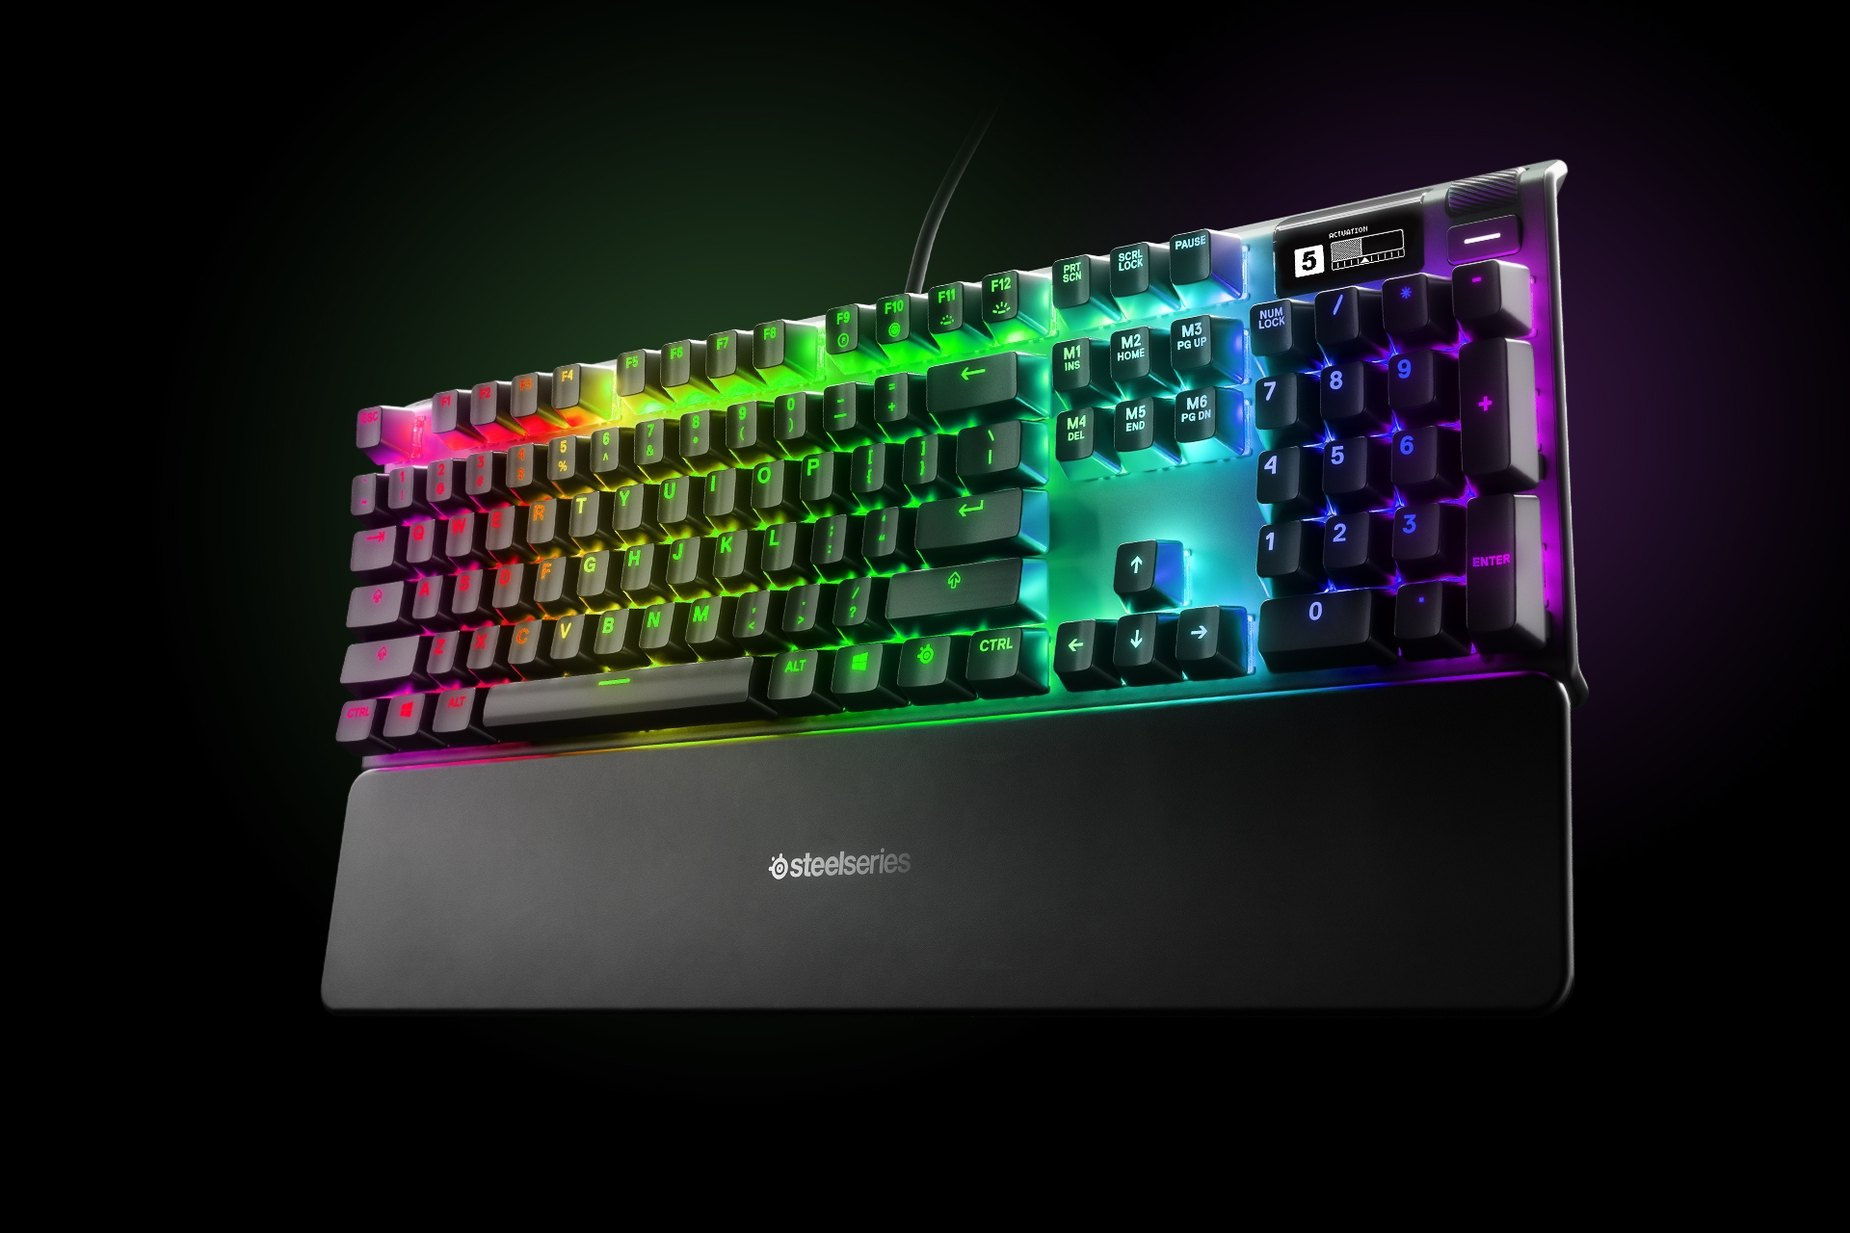 Французский - Apex Pro gaming keyboard with the illumination lit up on dark background, also shows the OLED screen and controls used to change settings, switch actuation, and adjust audio